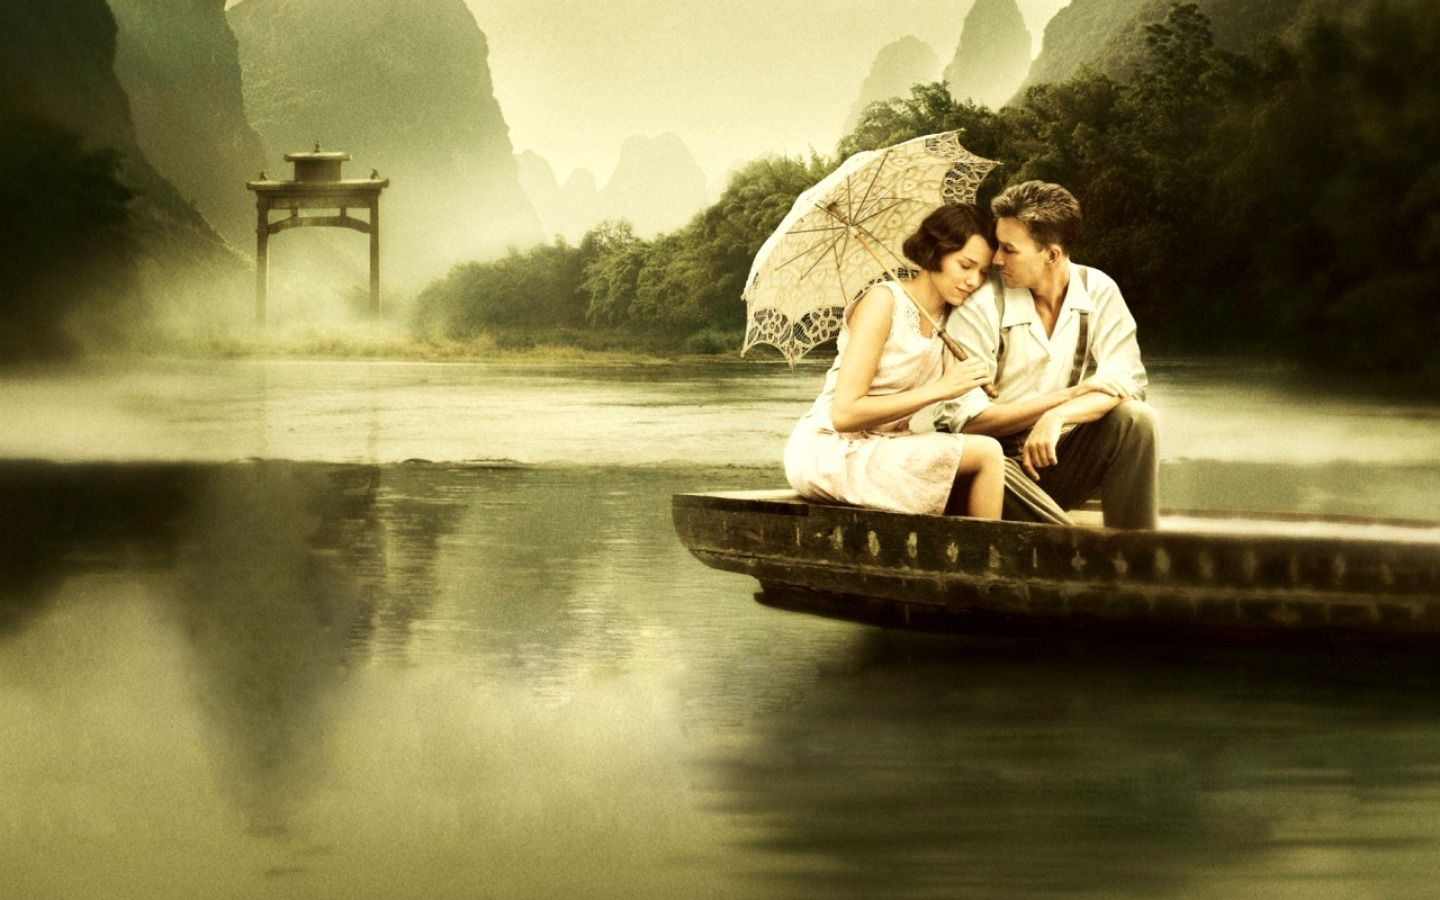 New Images Of Love Couple Download Love Couple Wallpaper Free Download Hd Wallpapers Regarding Im Cute Love Quotes Love Couple Images Love Couple Wallpaper